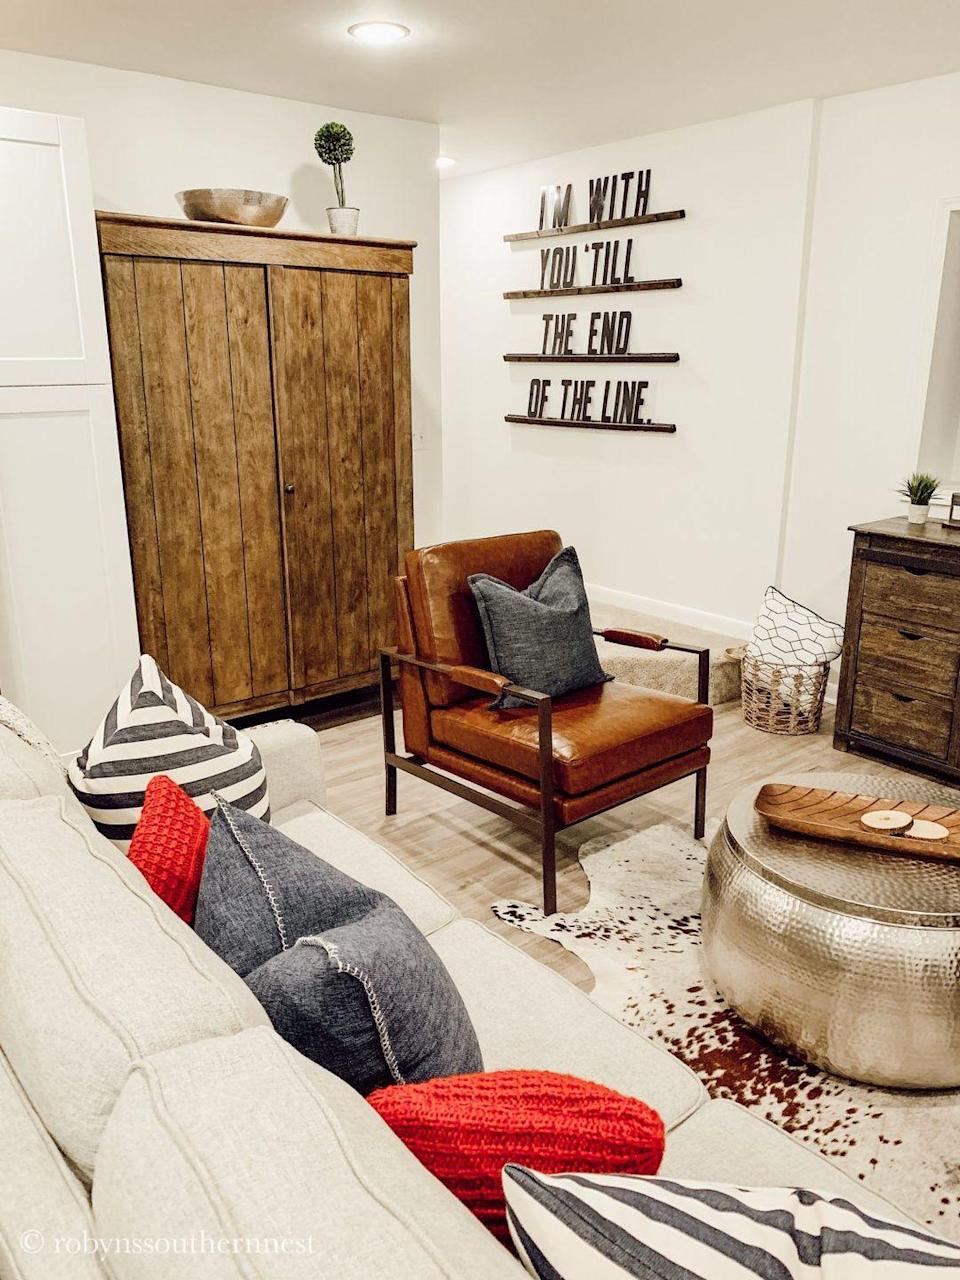 """<p>Natural materials, a custom barn door, and a decorative wagon wheel bring rustic chic style to this basement space. Use romantic word wall art to celebrate your love as well as your style.</p><p><strong>See more at <a href=""""https://www.robynssouthernnest.com/2019/07/16/basement-renovation-reveal/"""" rel=""""nofollow noopener"""" target=""""_blank"""" data-ylk=""""slk:Robyn's Southern Nest"""" class=""""link rapid-noclick-resp"""">Robyn's Southern Nest</a>. </strong></p><p><a class=""""link rapid-noclick-resp"""" href=""""https://go.redirectingat.com?id=74968X1596630&url=https%3A%2F%2Fwww.walmart.com%2Fip%2FMetal-Cutout-Home-Sweet-Home-Cursive-Cutout-Sign-3D-Word-Art-Home-Accent-Decor-Perfect-for-Modern-Rustic-or-Vintage-Farmhouse-Style-by-Lavish-Home%2F368072870&sref=https%3A%2F%2Fwww.redbookmag.com%2Fhome%2Fg36061437%2Fbasement-ideas%2F"""" rel=""""nofollow noopener"""" target=""""_blank"""" data-ylk=""""slk:SHOP WORD WALL ART"""">SHOP WORD WALL ART</a></p>"""